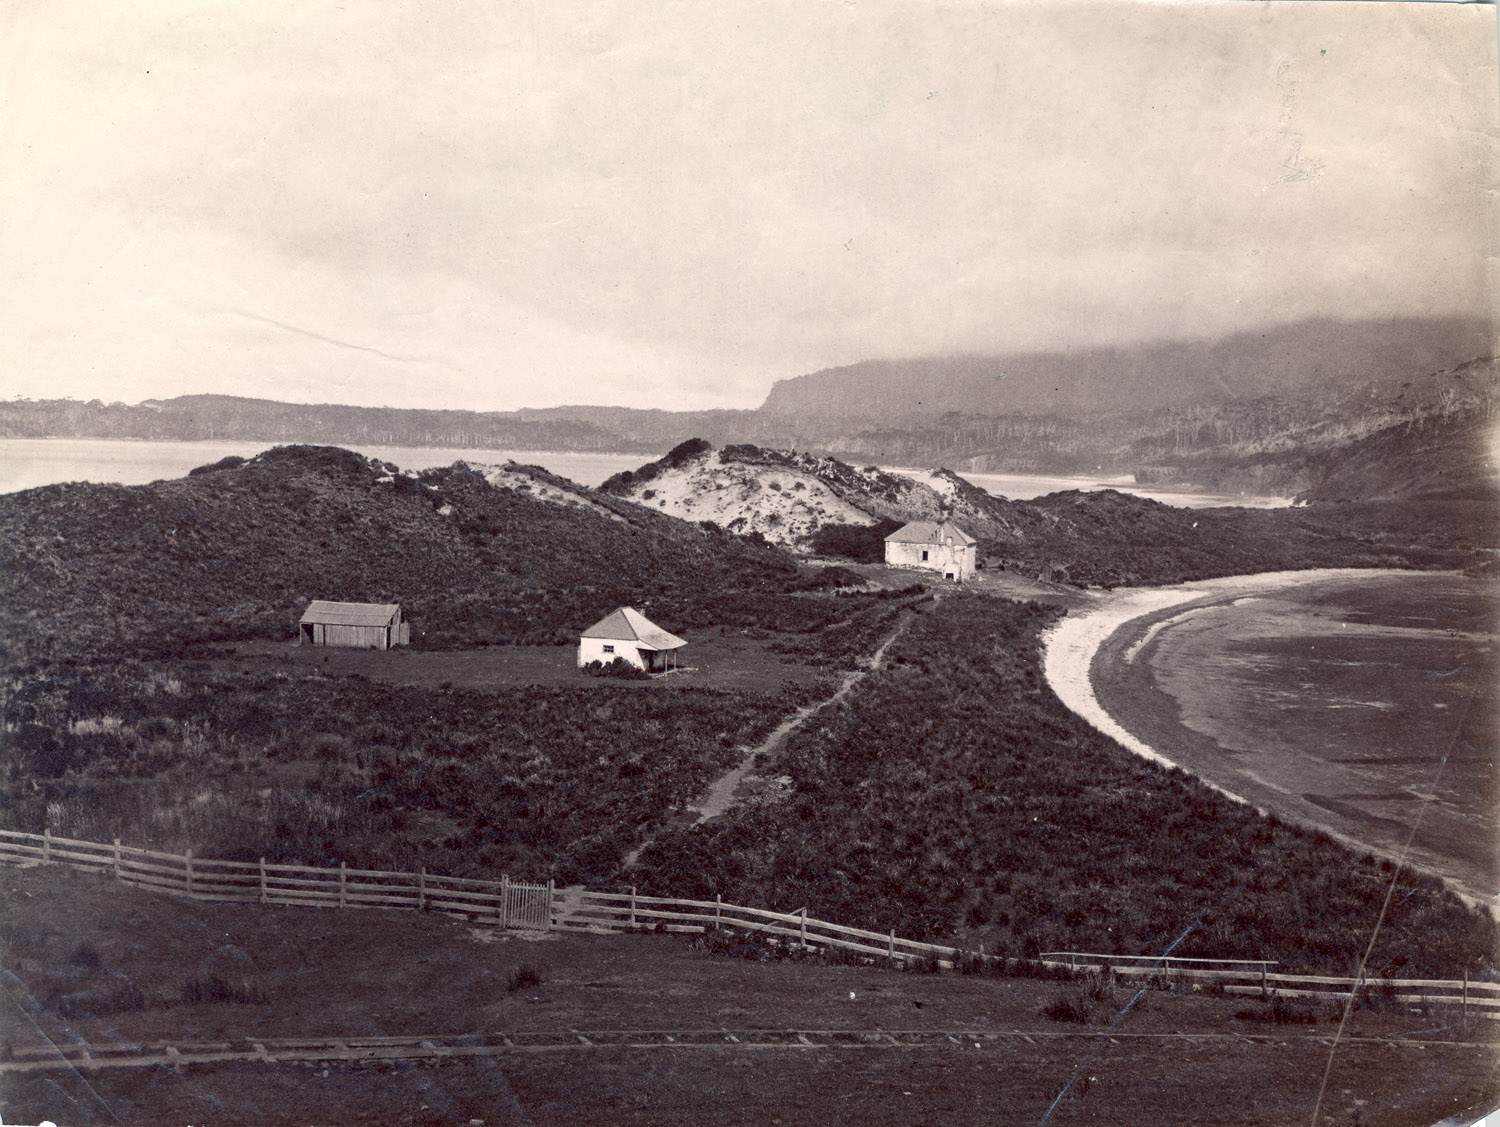 Eaglehawk Neck Australia  city pictures gallery : Photograph of Eaglehawk Neck, Tasmania Library Open Repository